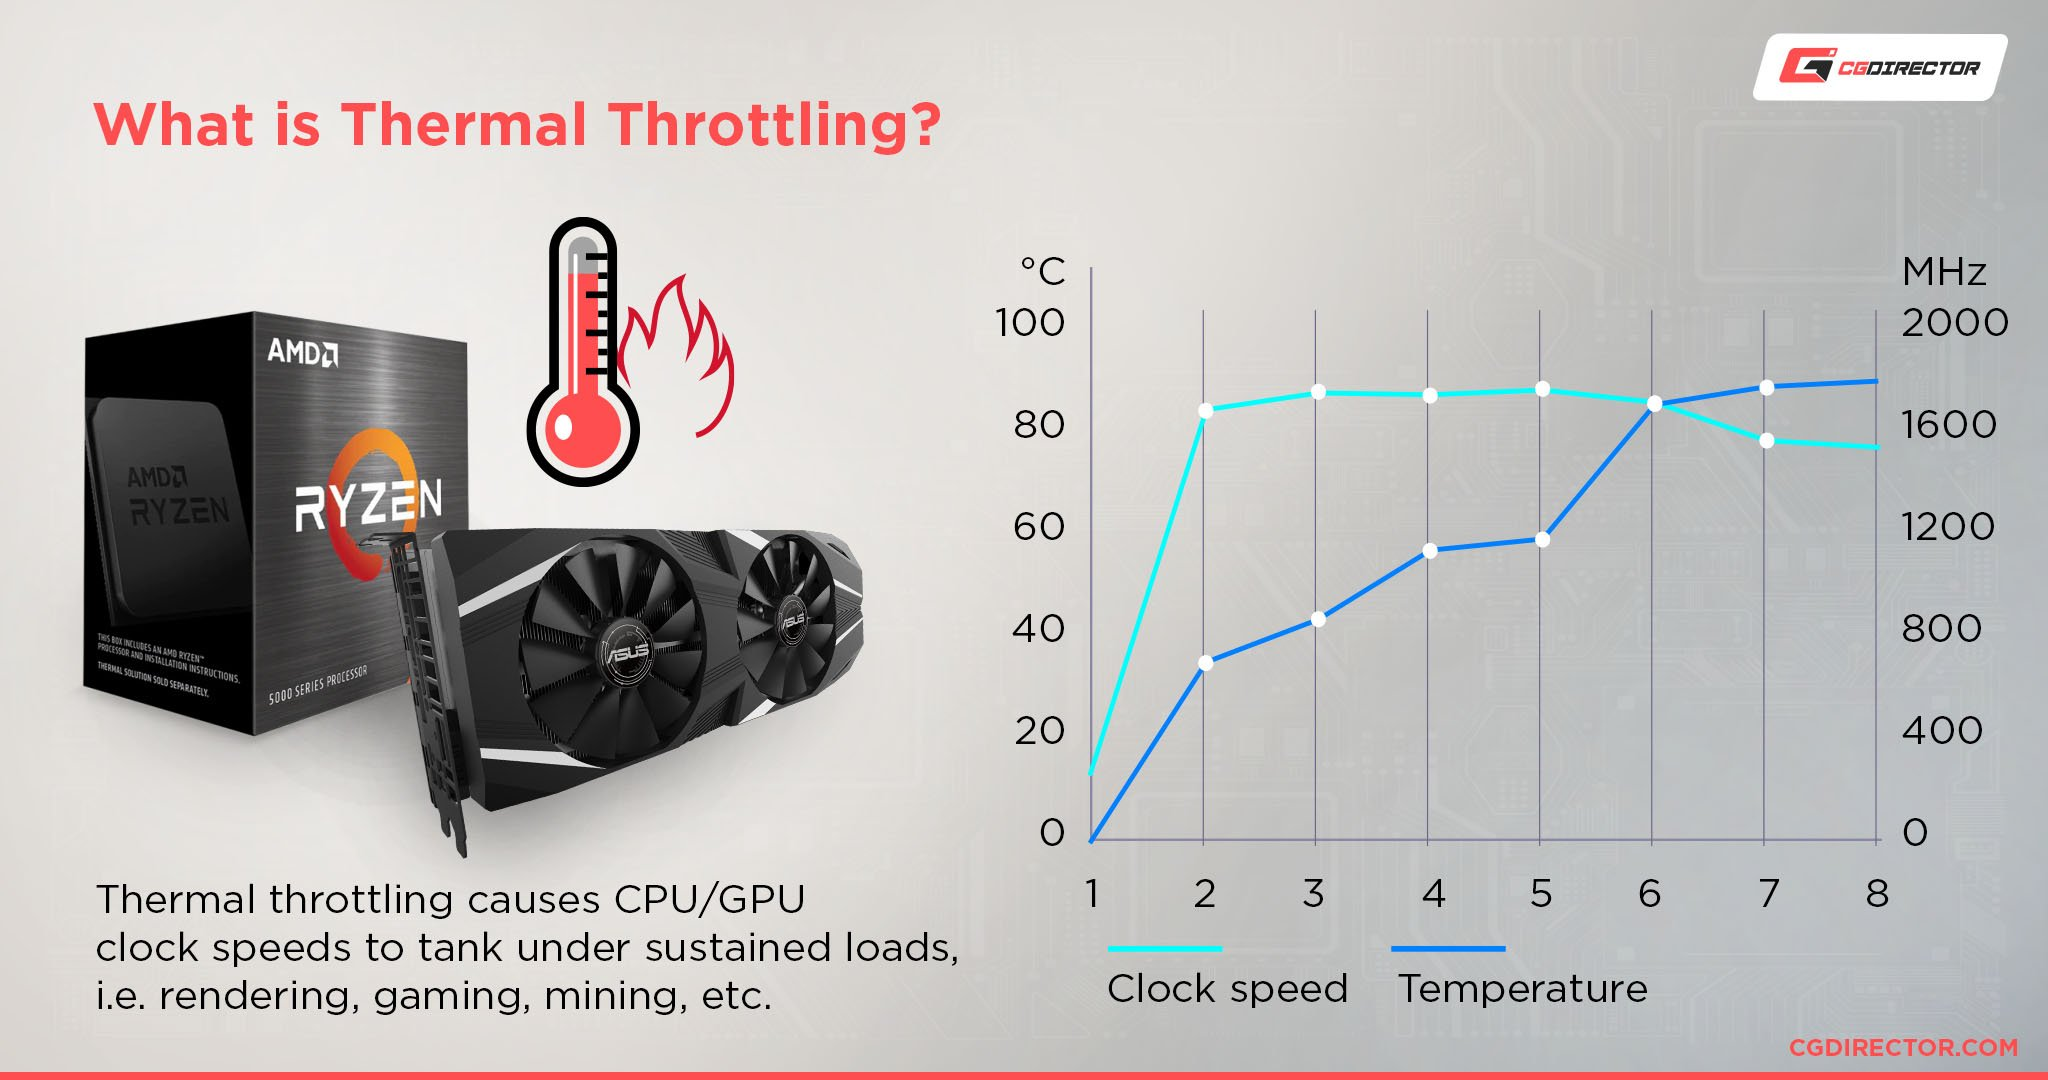 What is Thermal Throttling